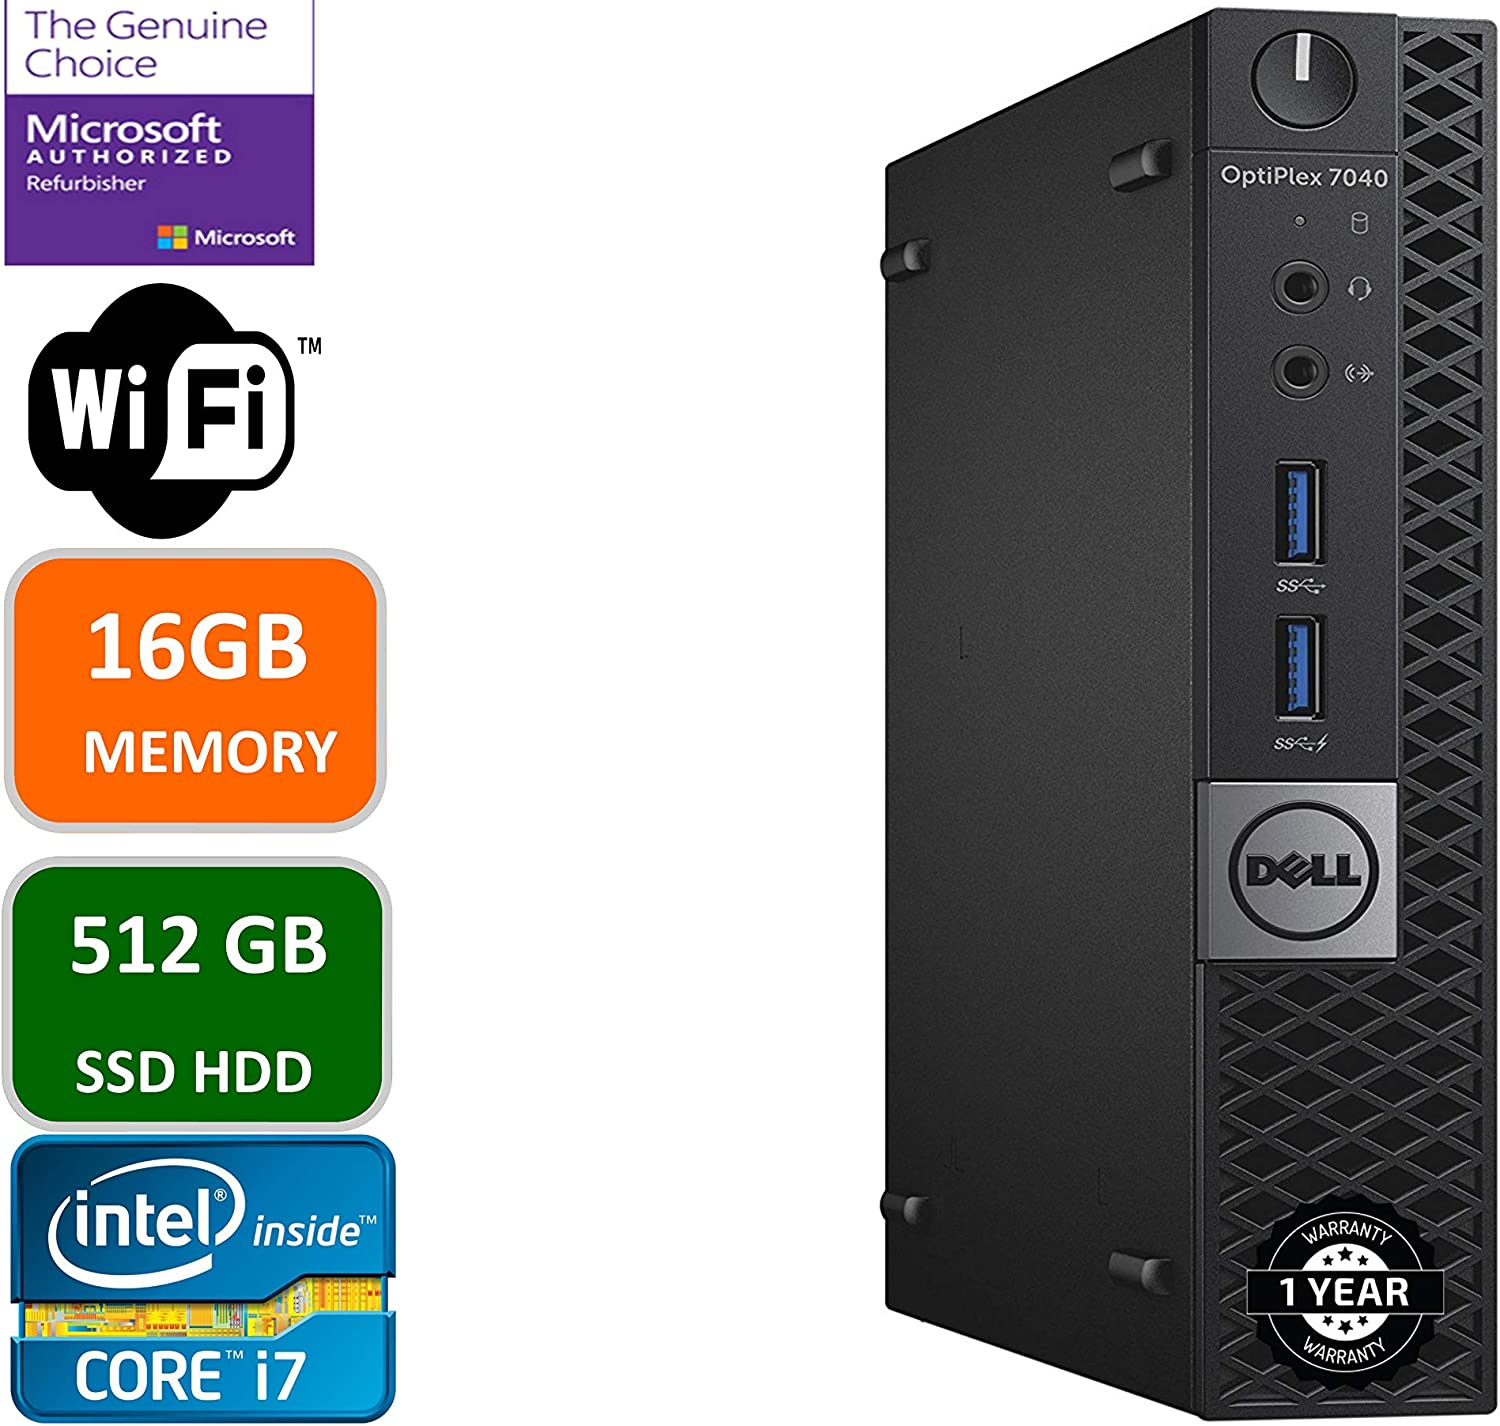 DELL OPTIPLEX 7040 6th Gen Micro Business Desktop Computer, Intel Quad Core i7 6700T up to 3.6GHz, 16G DDR4, 512G SSD, WiFi,HDMI, DP, Win 10 64-Bit Supports EN/ES/FR(CI5)(Renewed)